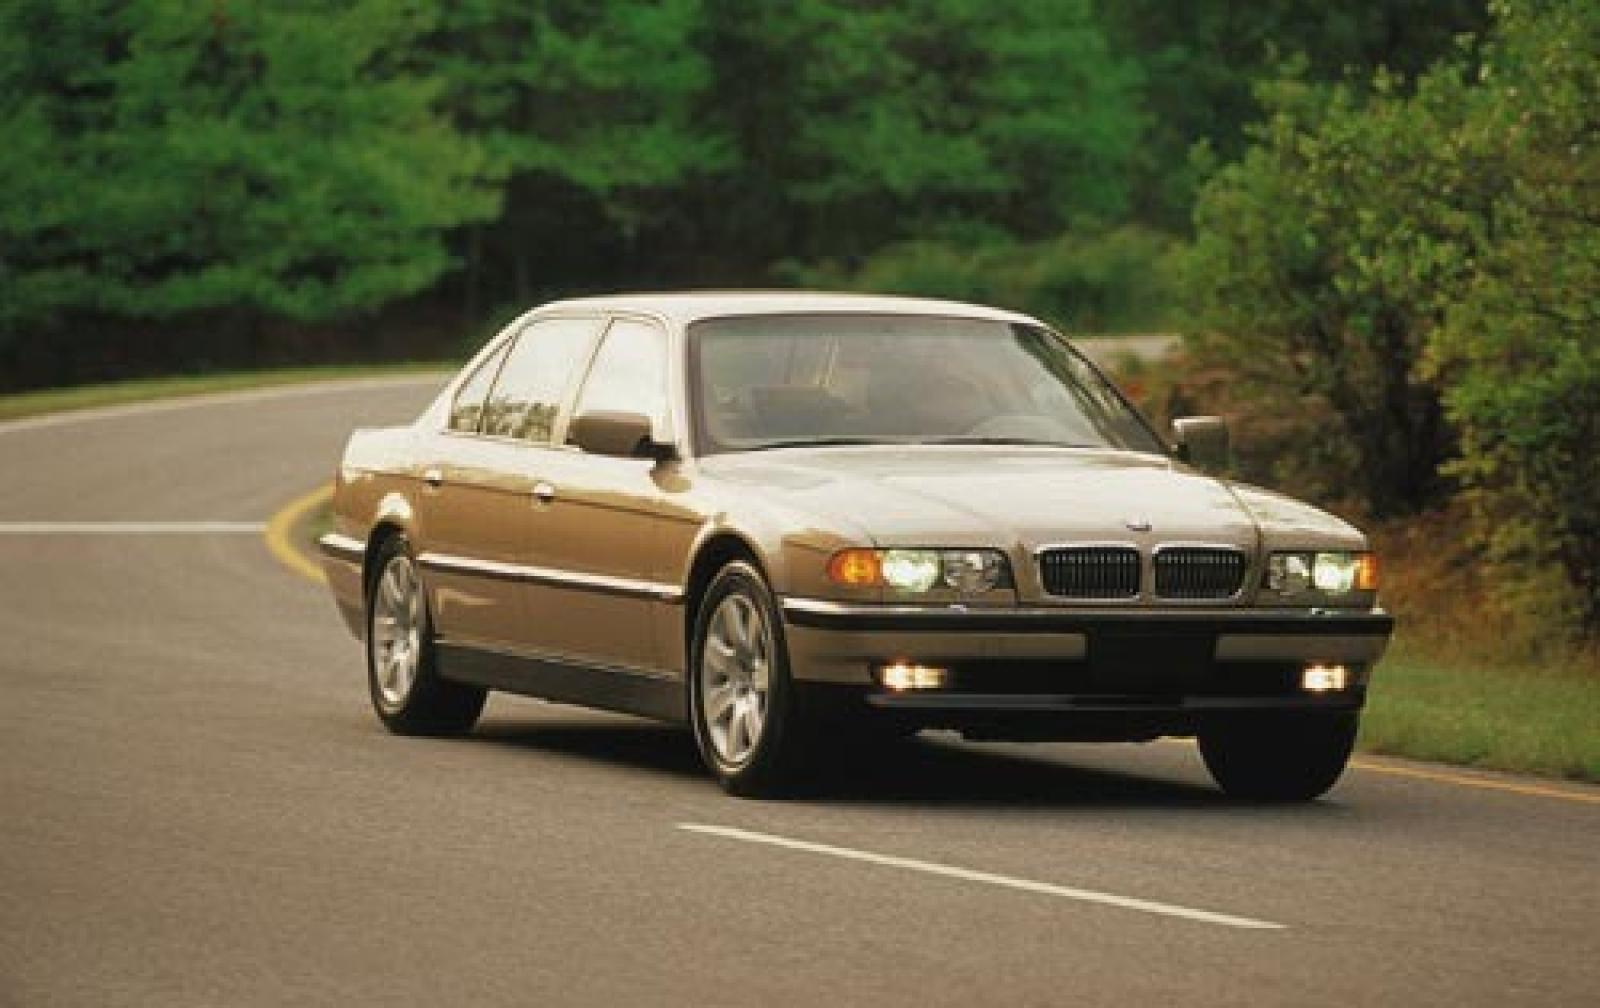 2001 Bmw 7 Series Information And Photos Zombiedrive